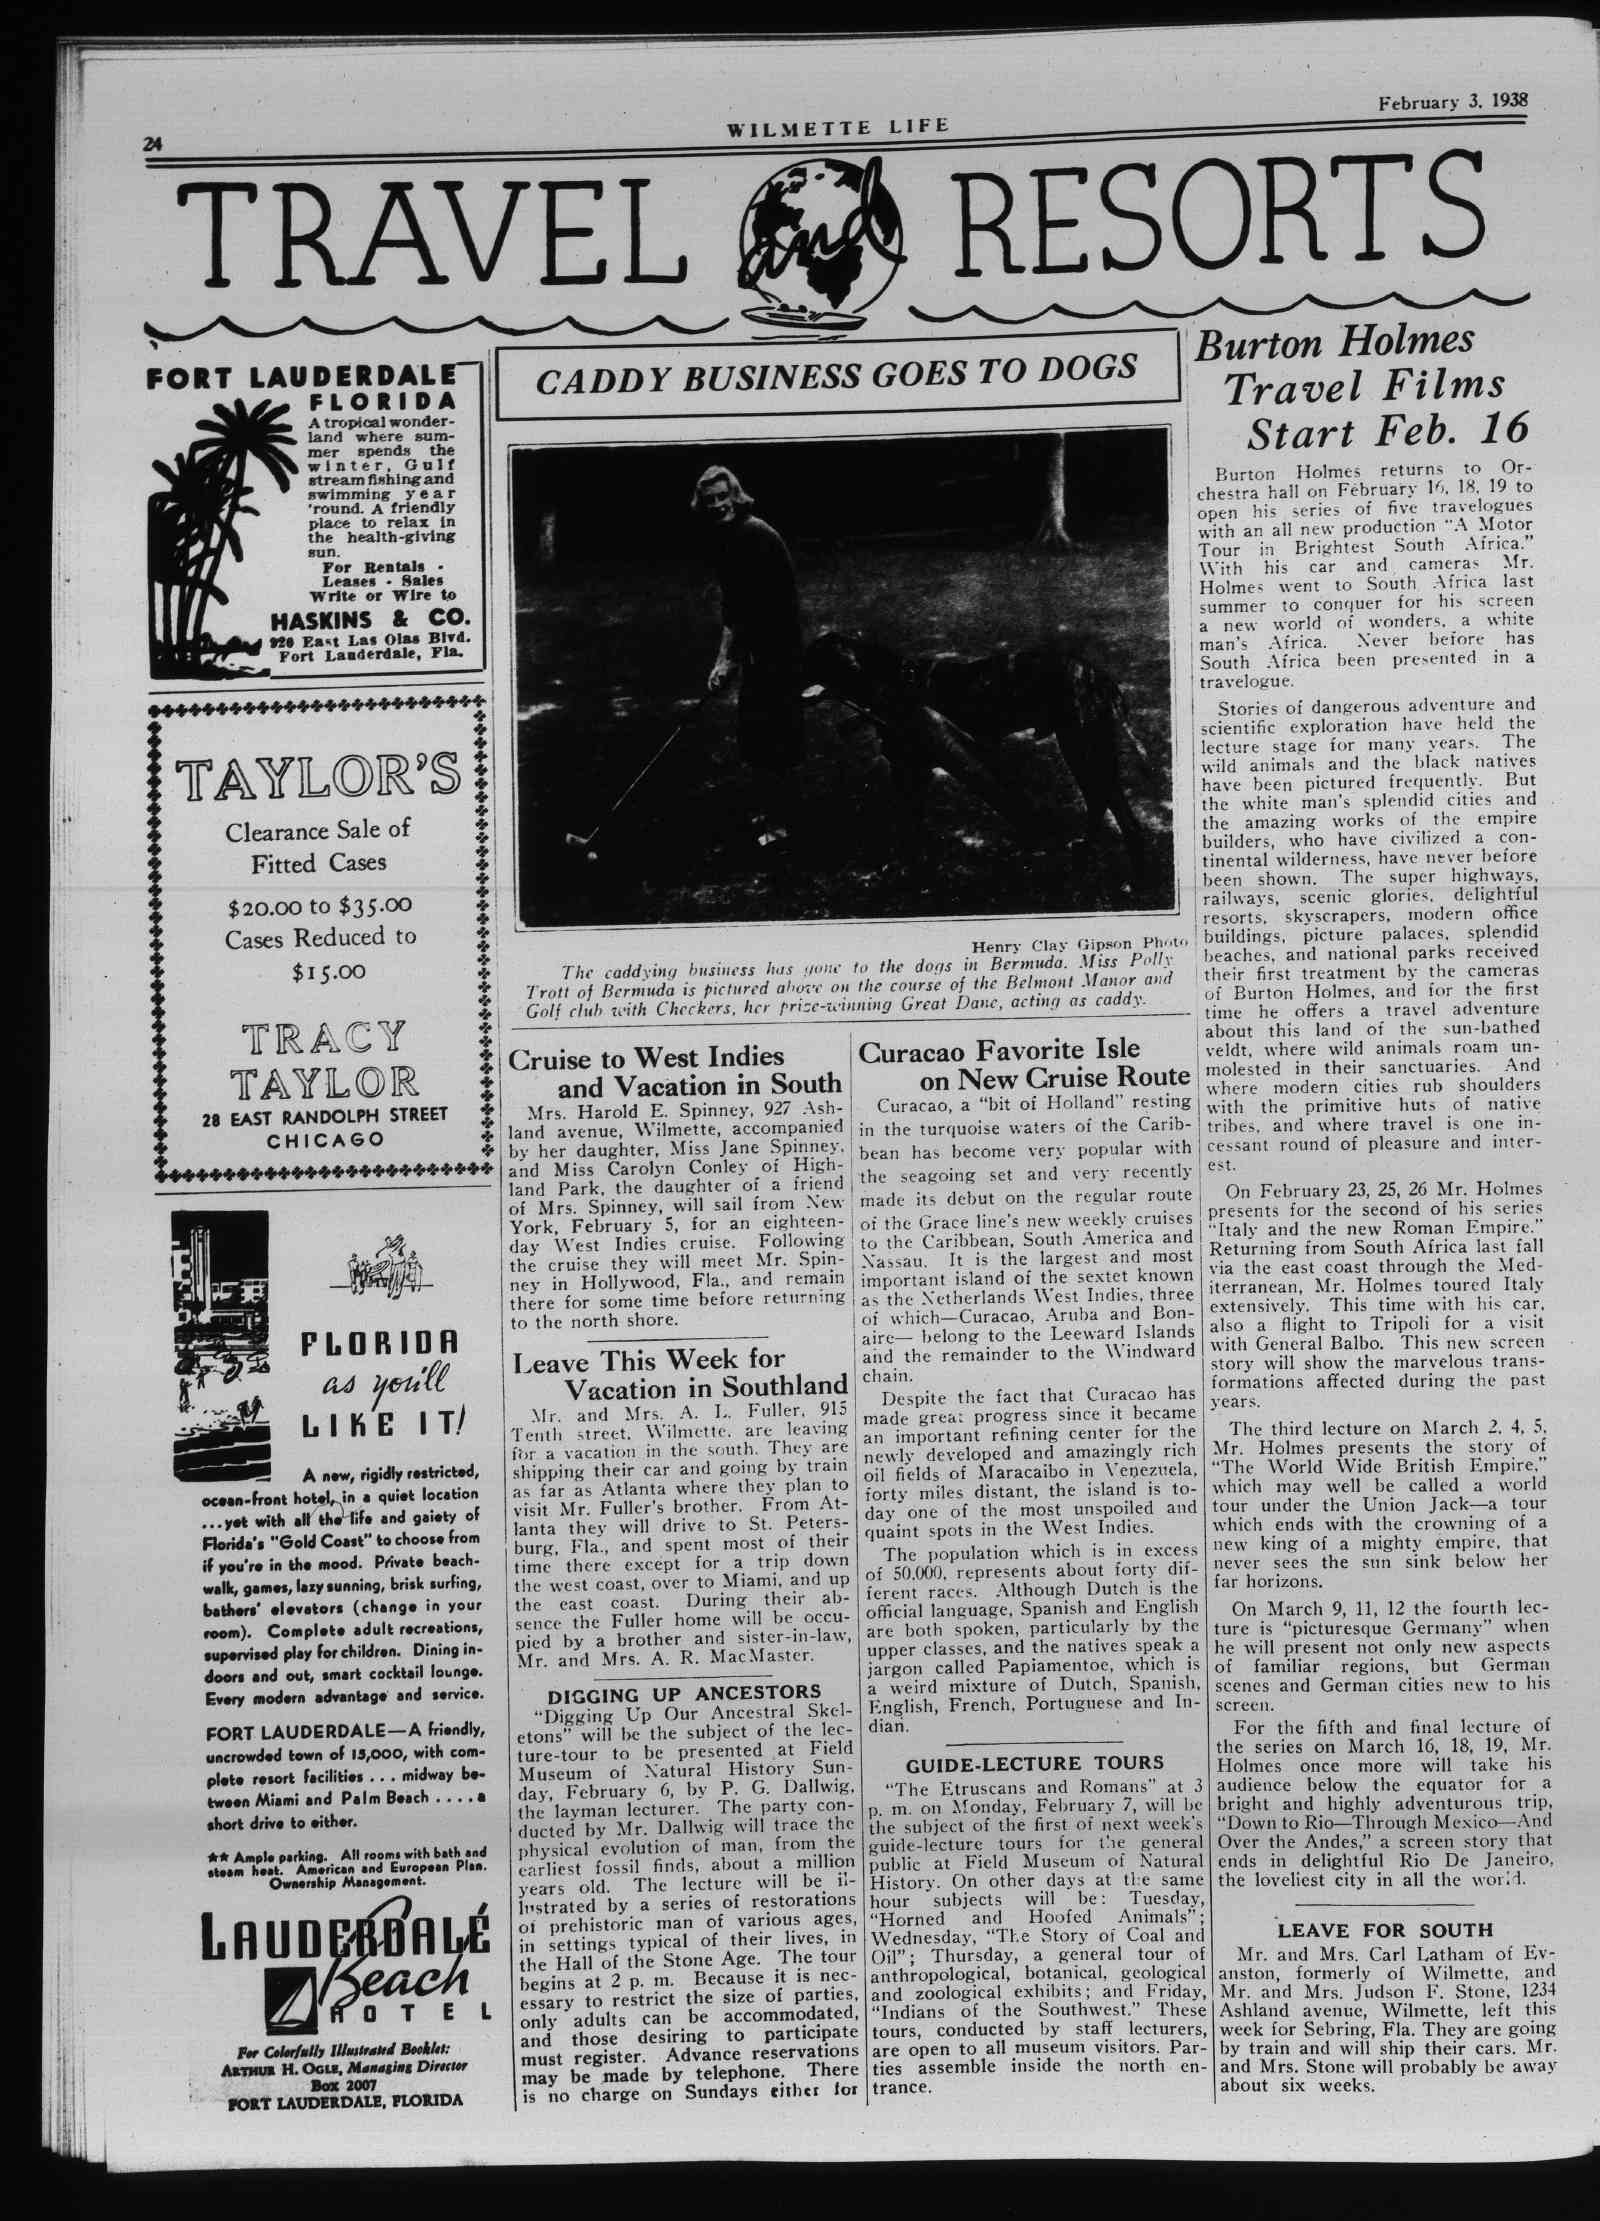 Wilmette Life (Wilmette, Illinois), 3 Feb 1938